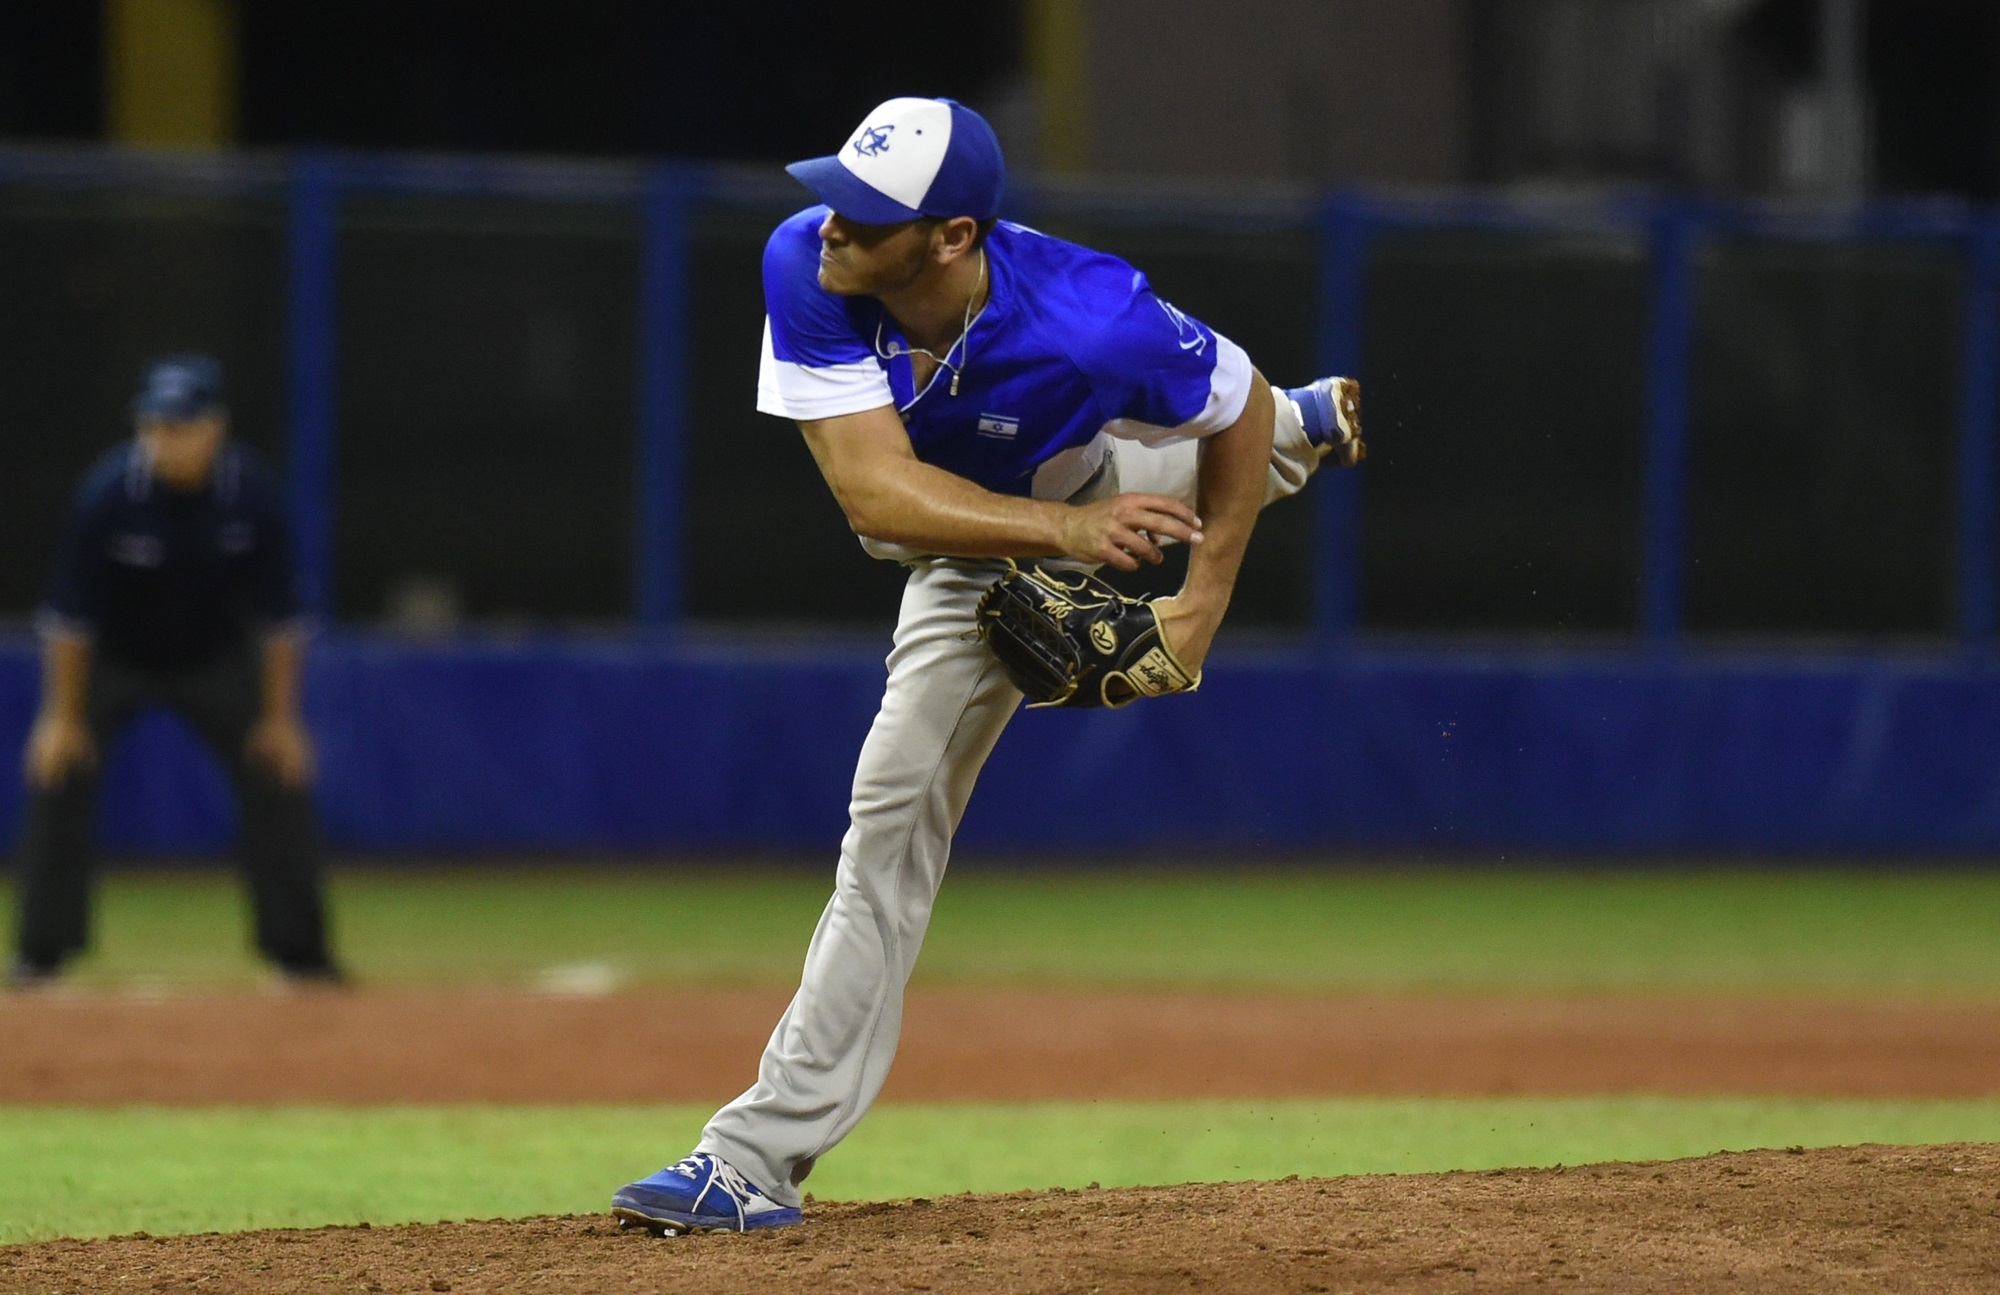 Jonathan De Marte was the third pitcher by Israel